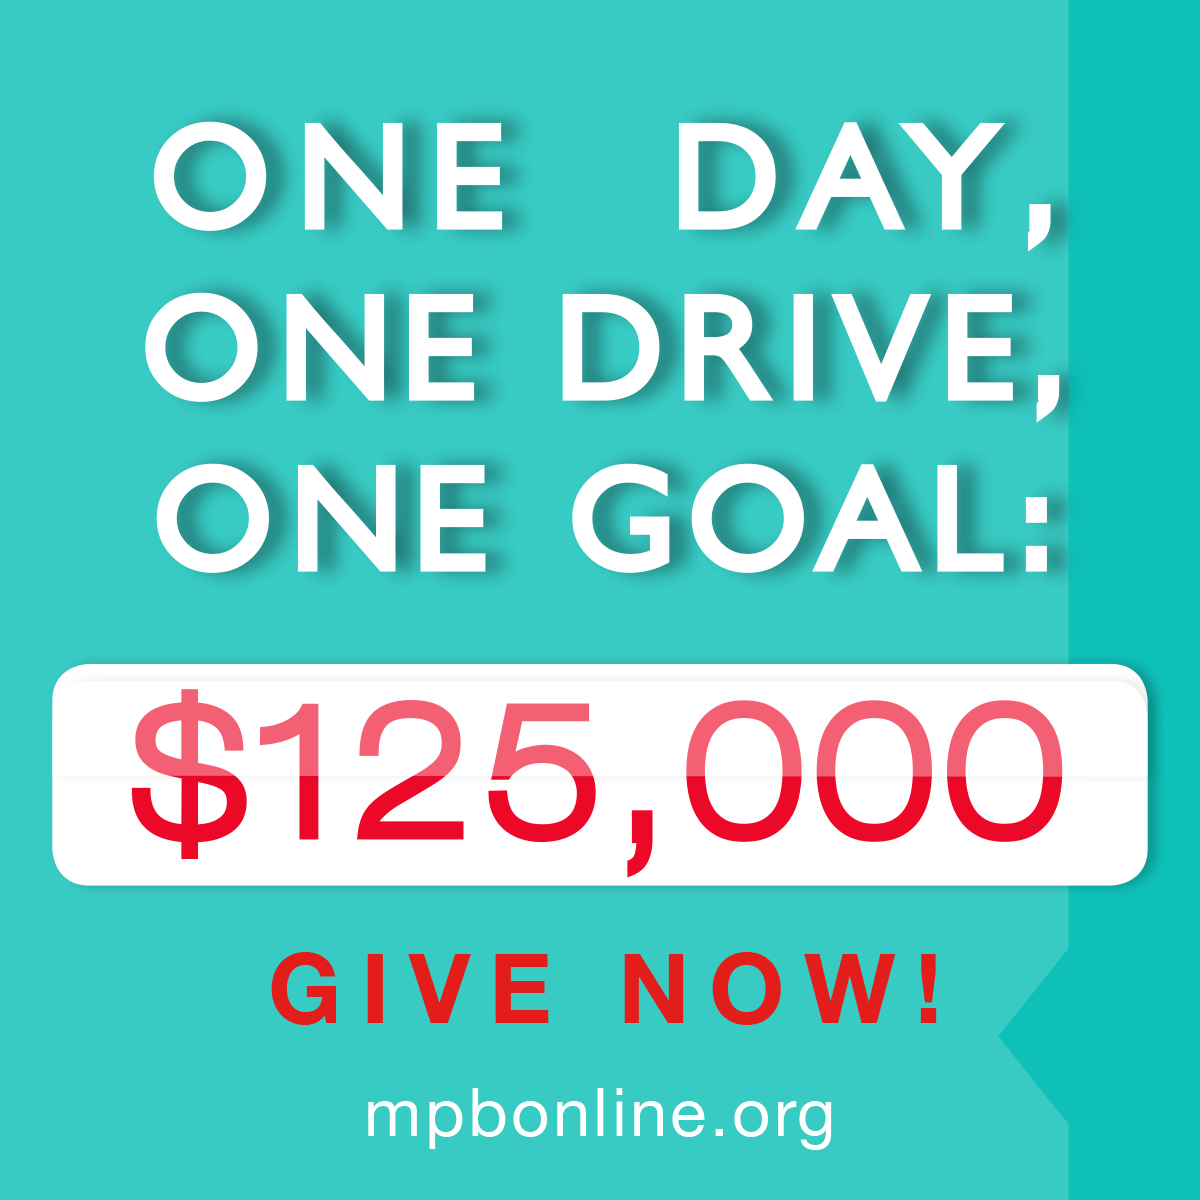 One Day, One Drive, One Goal: $125,000!